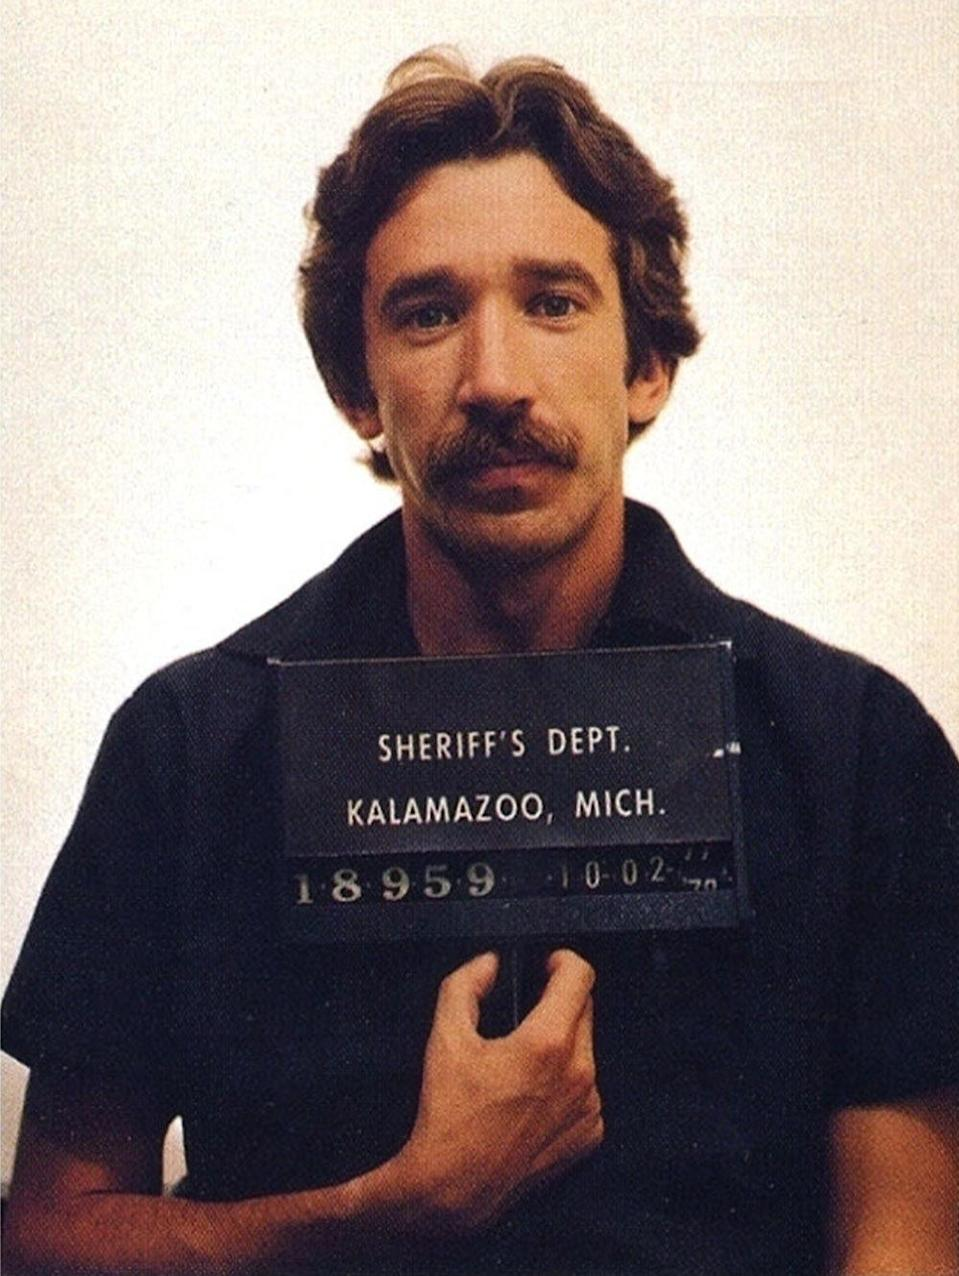 Tim Allen The future Buzz Lightyear was caught trying to sell cocaine to an undercover cop in 1978. He served two years in prison.